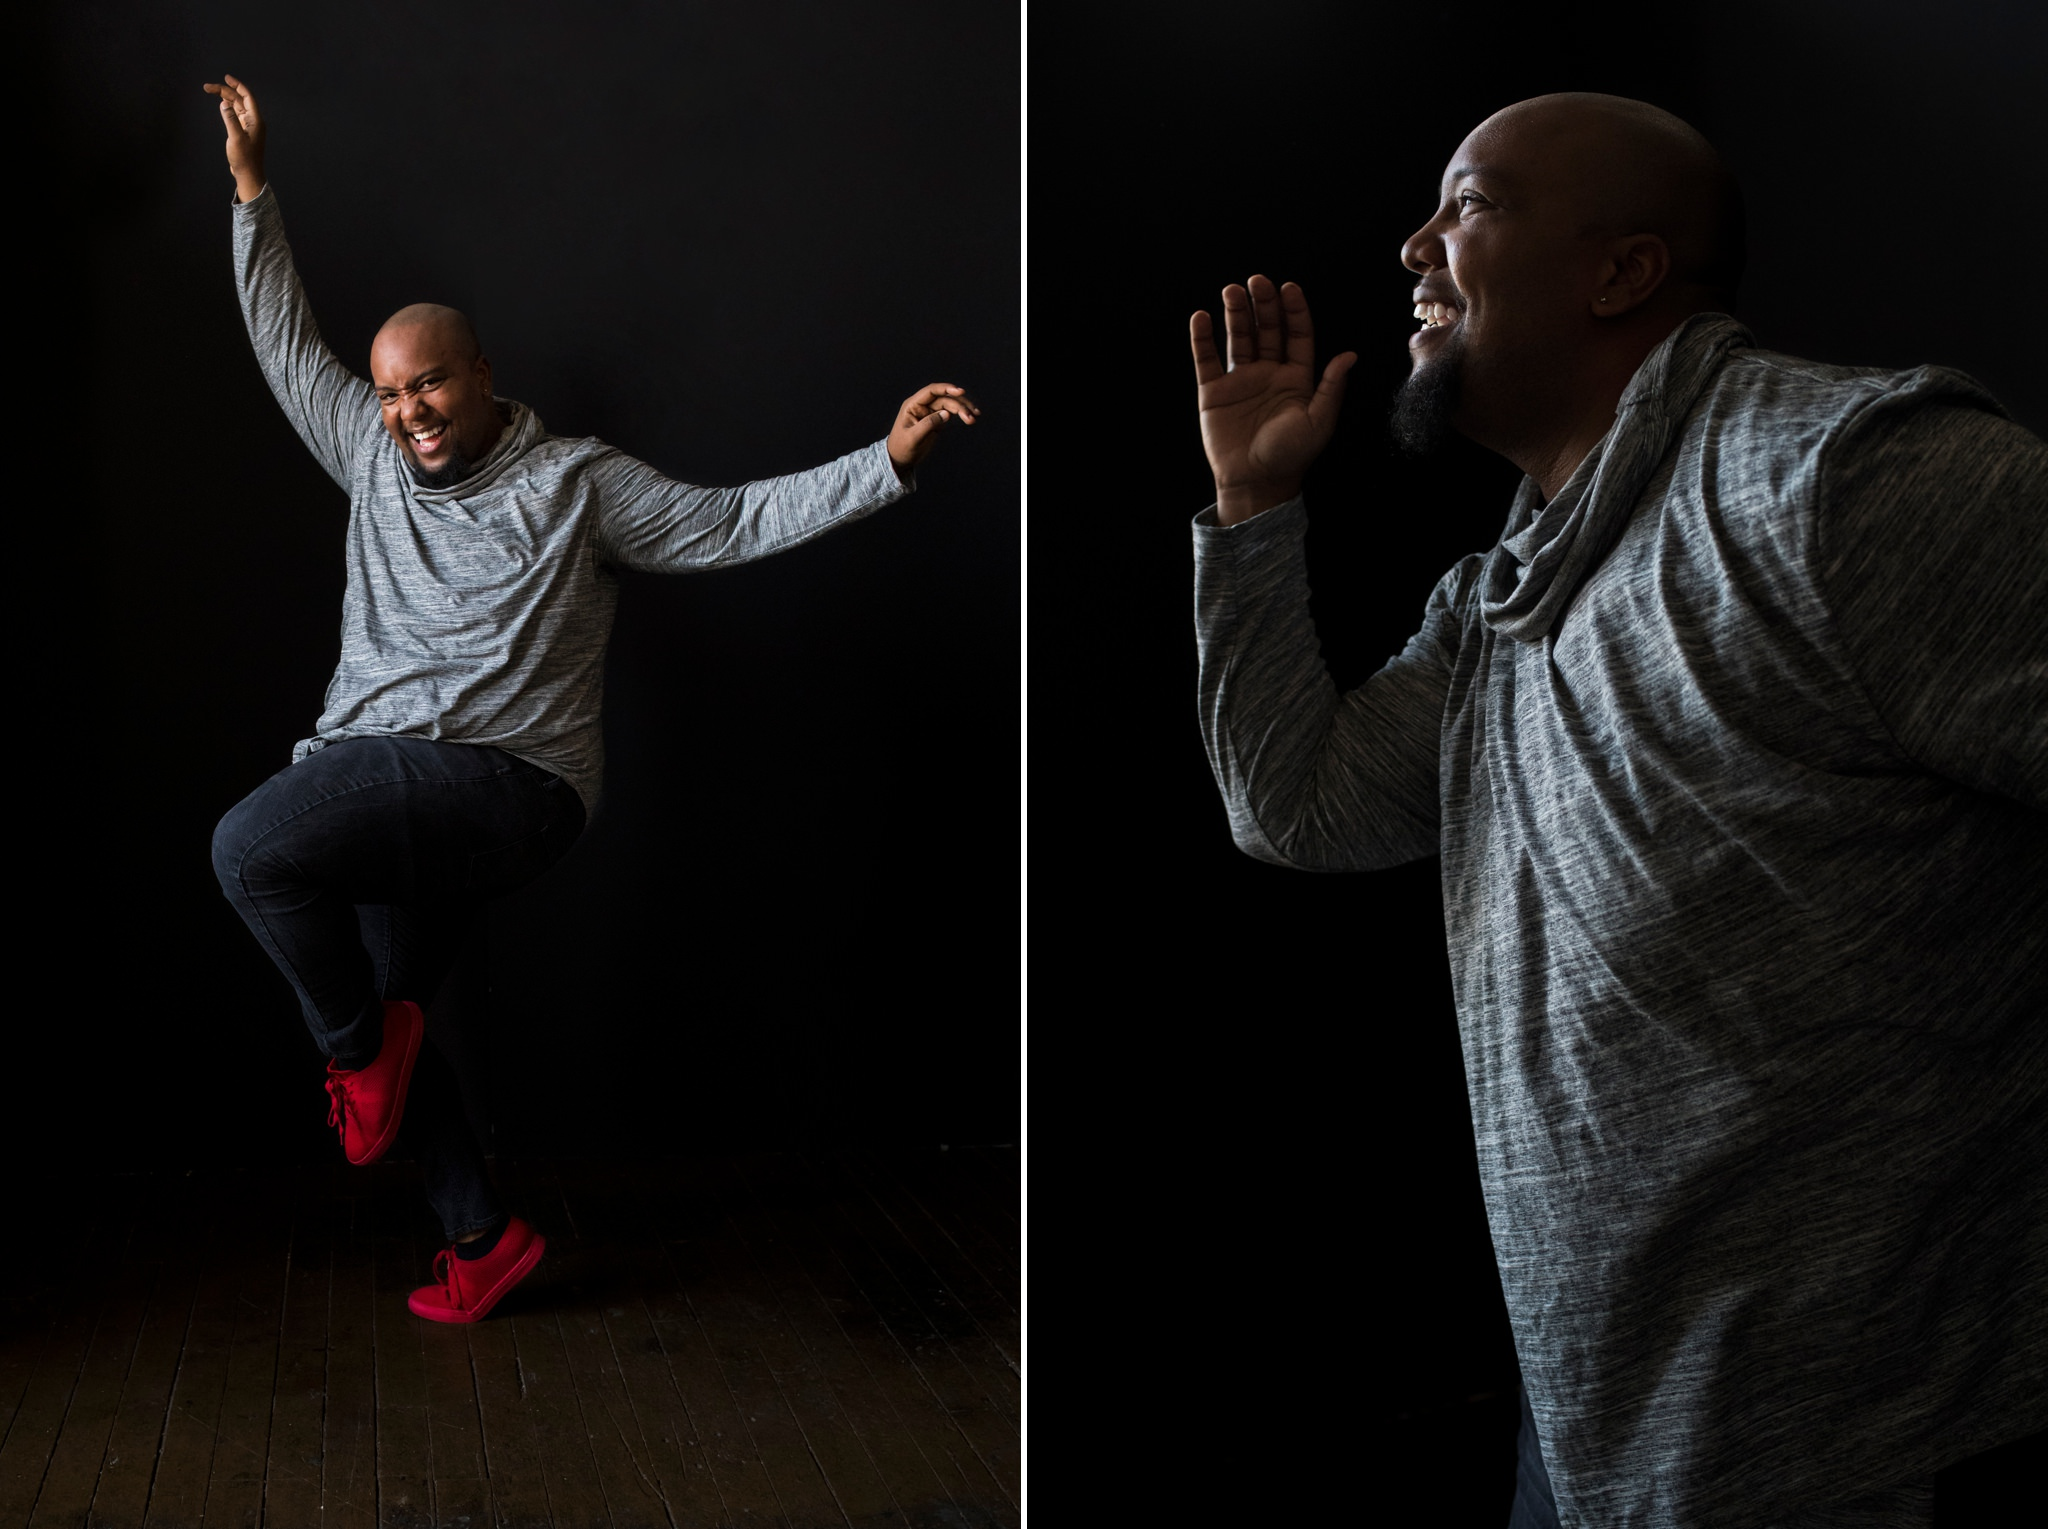 Broadway Portrait Photographer - Chicago Portrait Photographer - Genie in Aladdin - Anthony Murphy